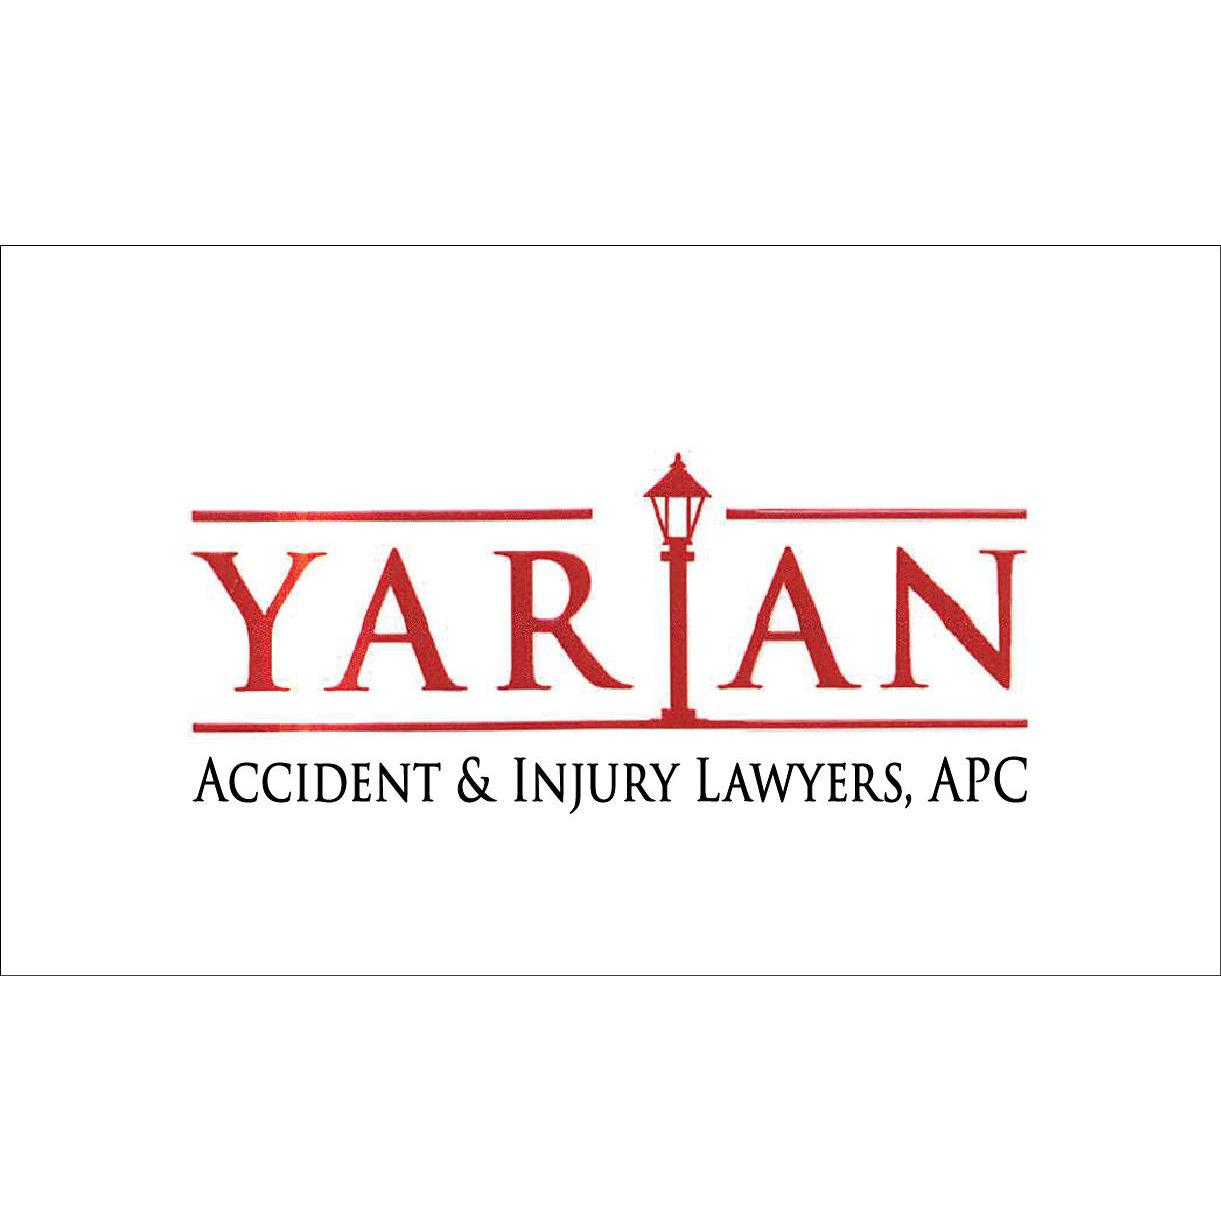 Yarian Accident & Injury Lawyers